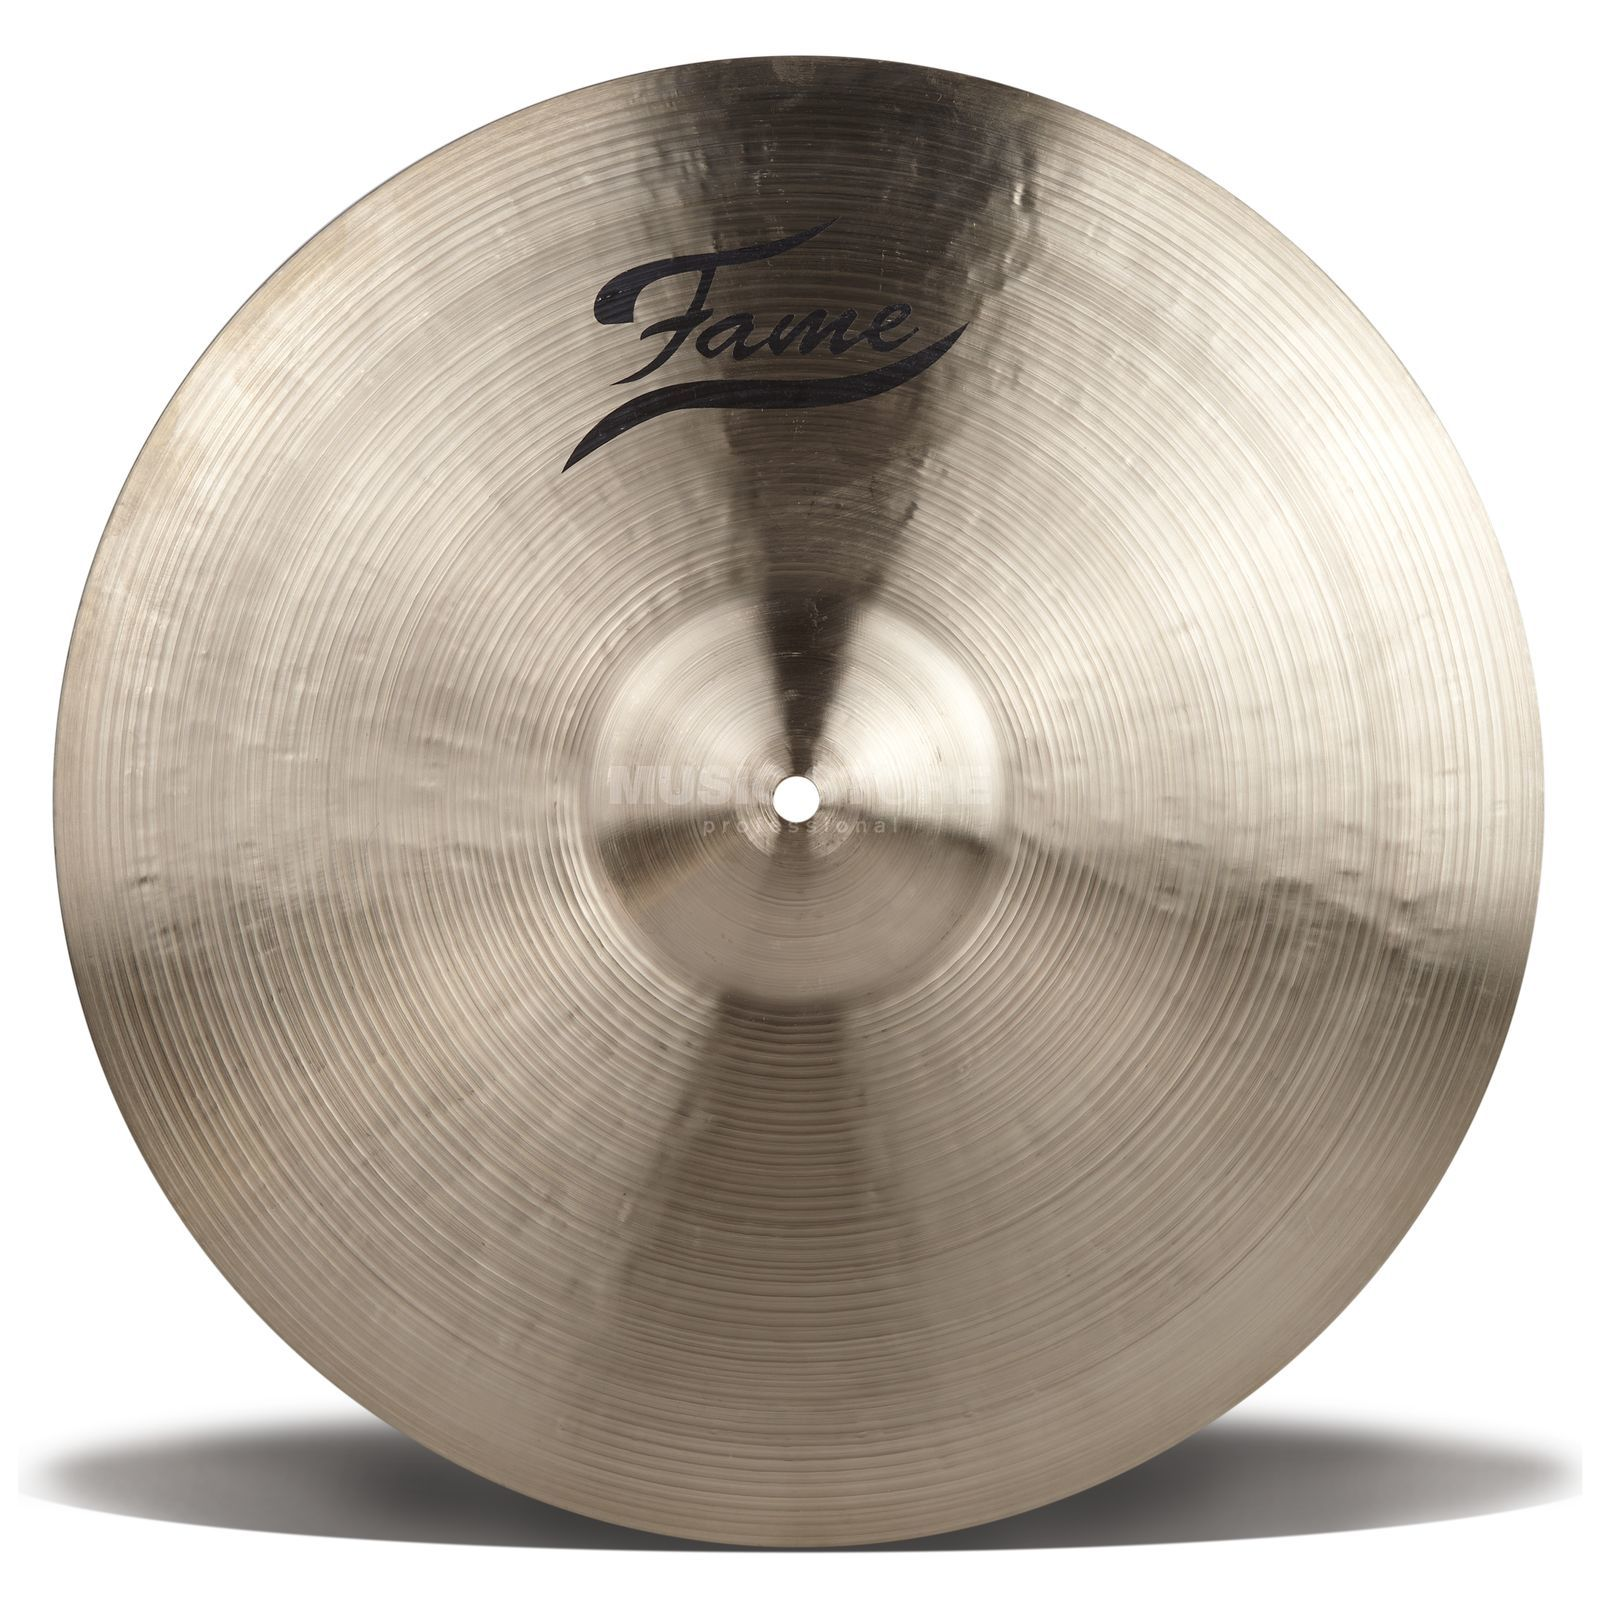 "Fame Masters B20 Heavy Crash 17"", Natural Finish Produktbild"